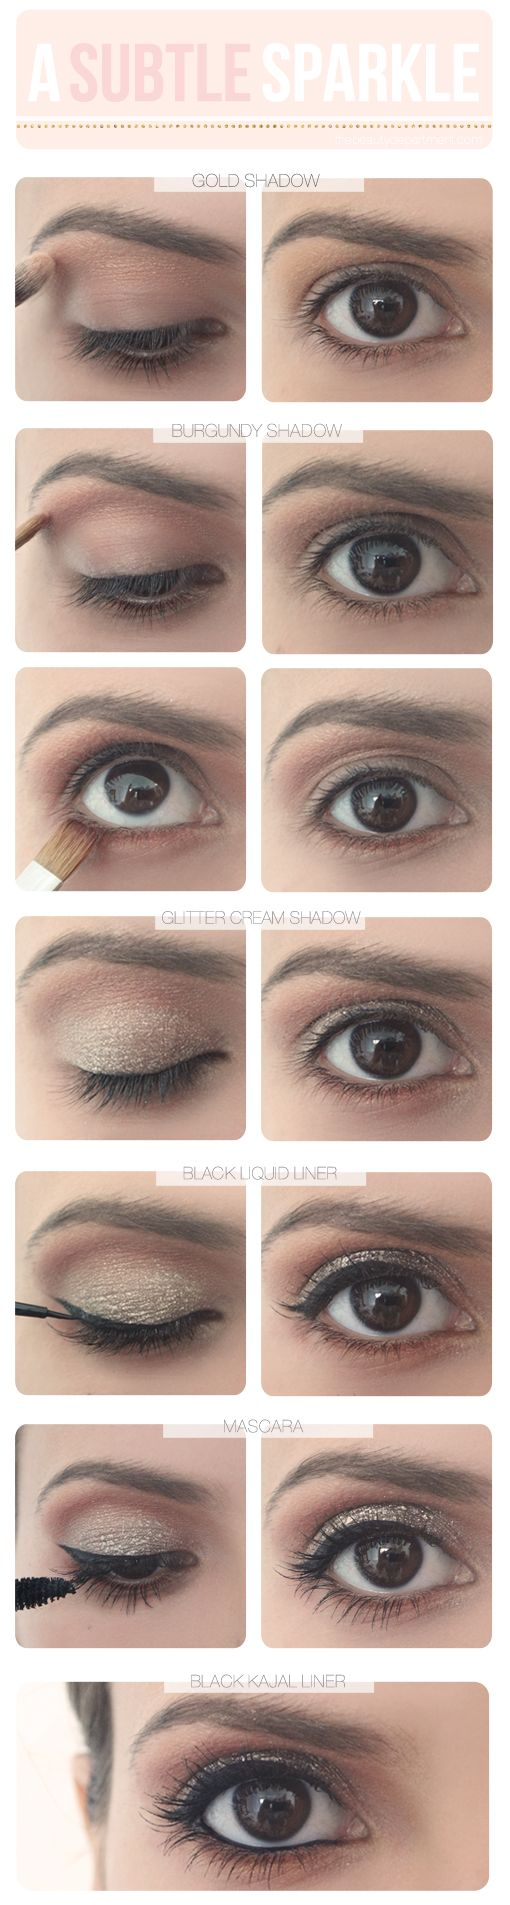 Subtle gold sparkle eye makeup eye shadow for brown eyes